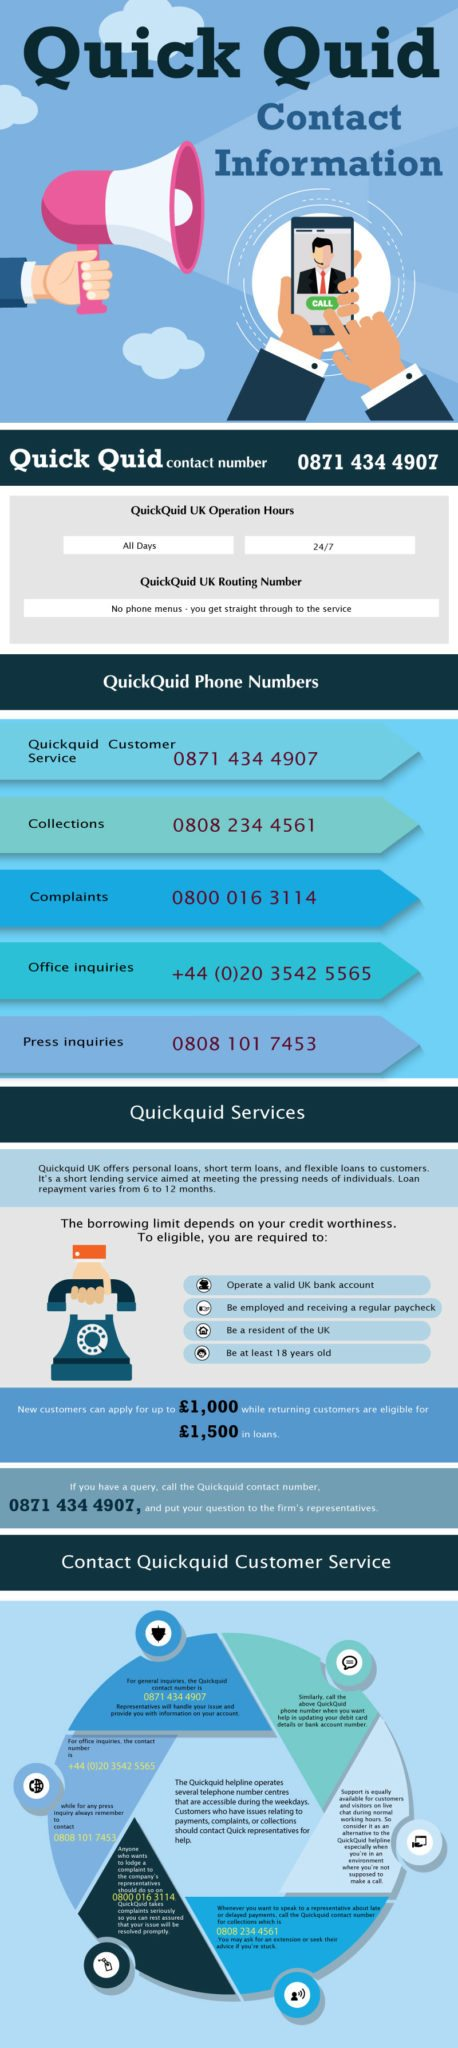 Quick Quid Customer Service Contact Number